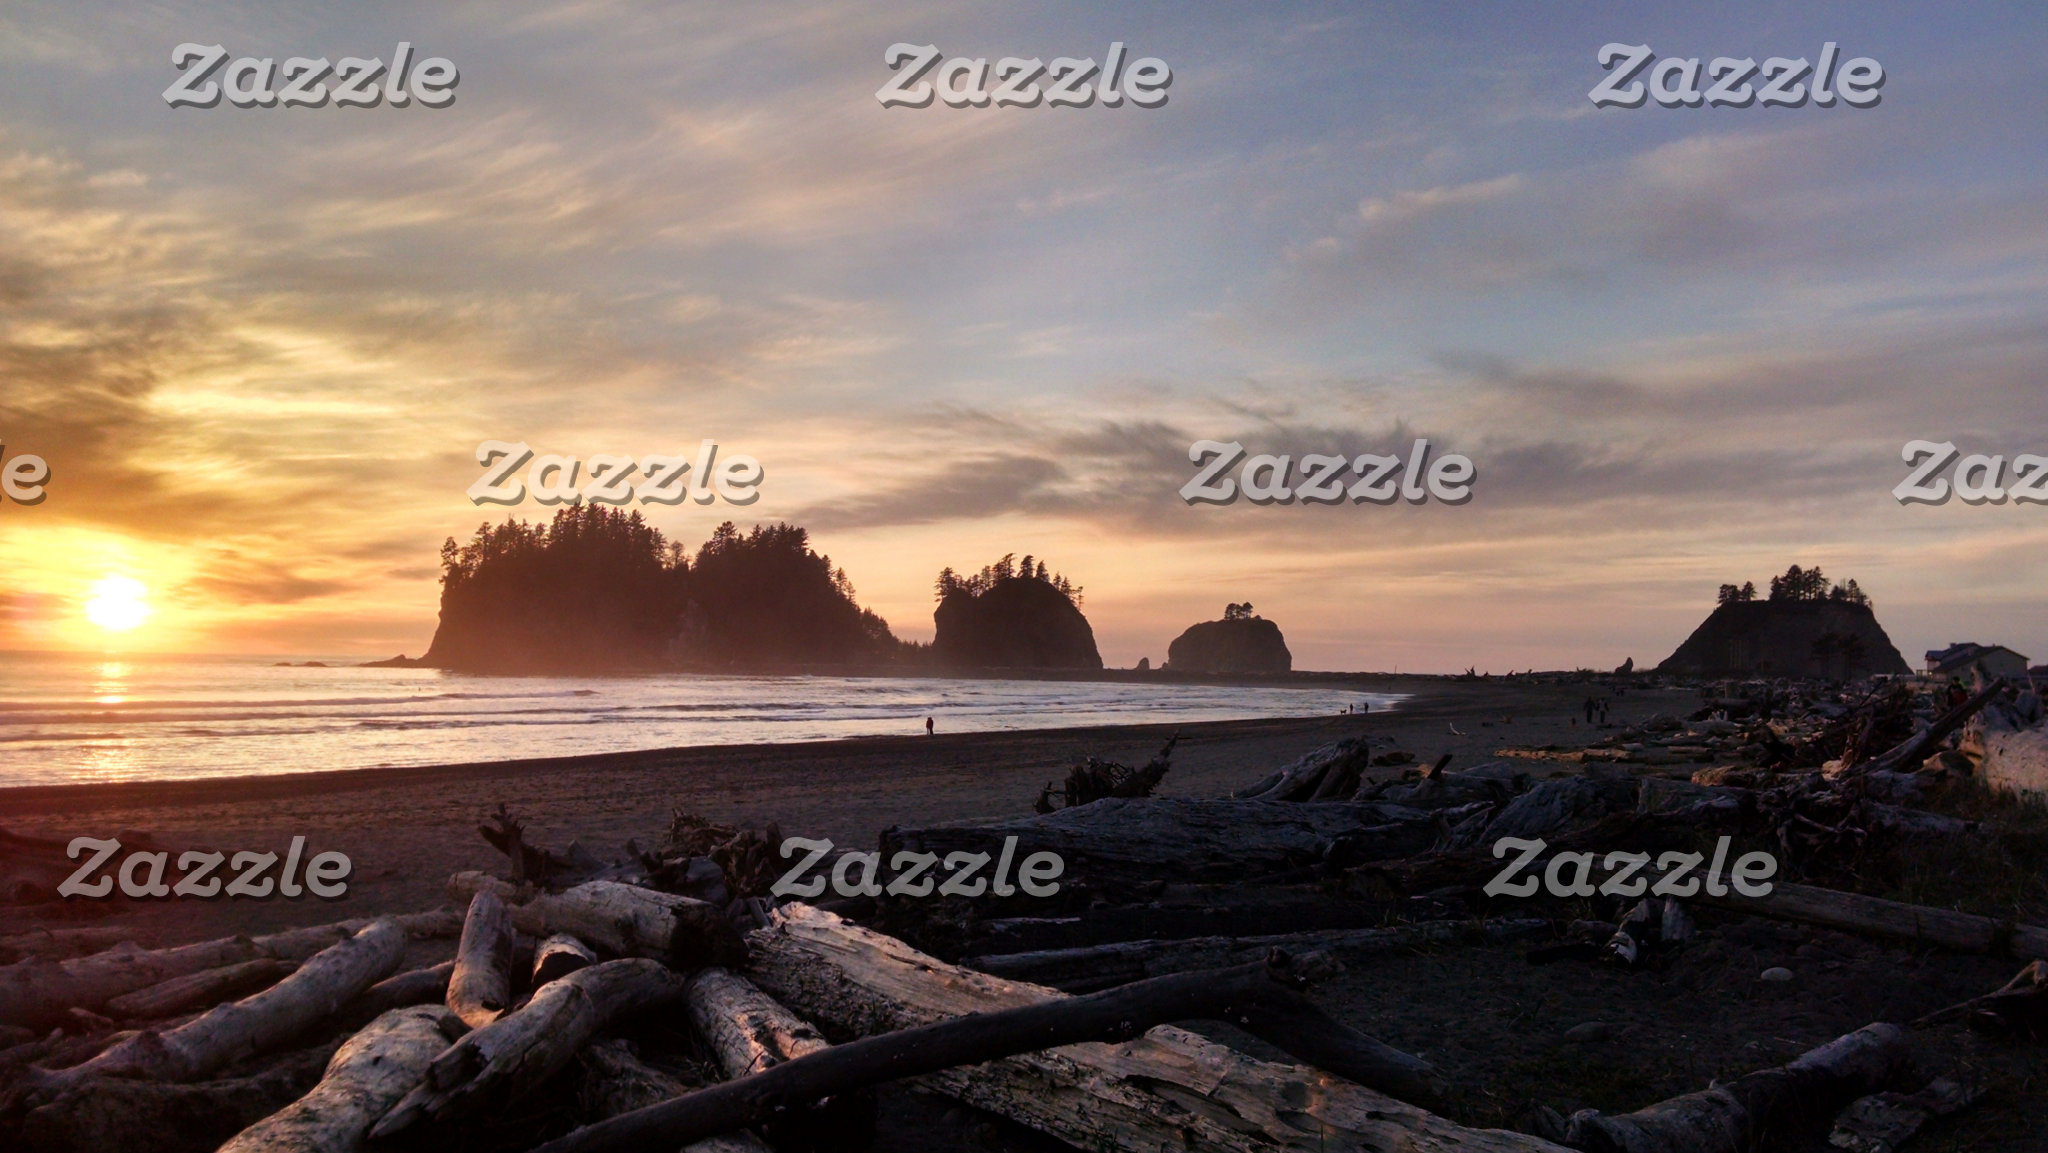 Western Washington Coast